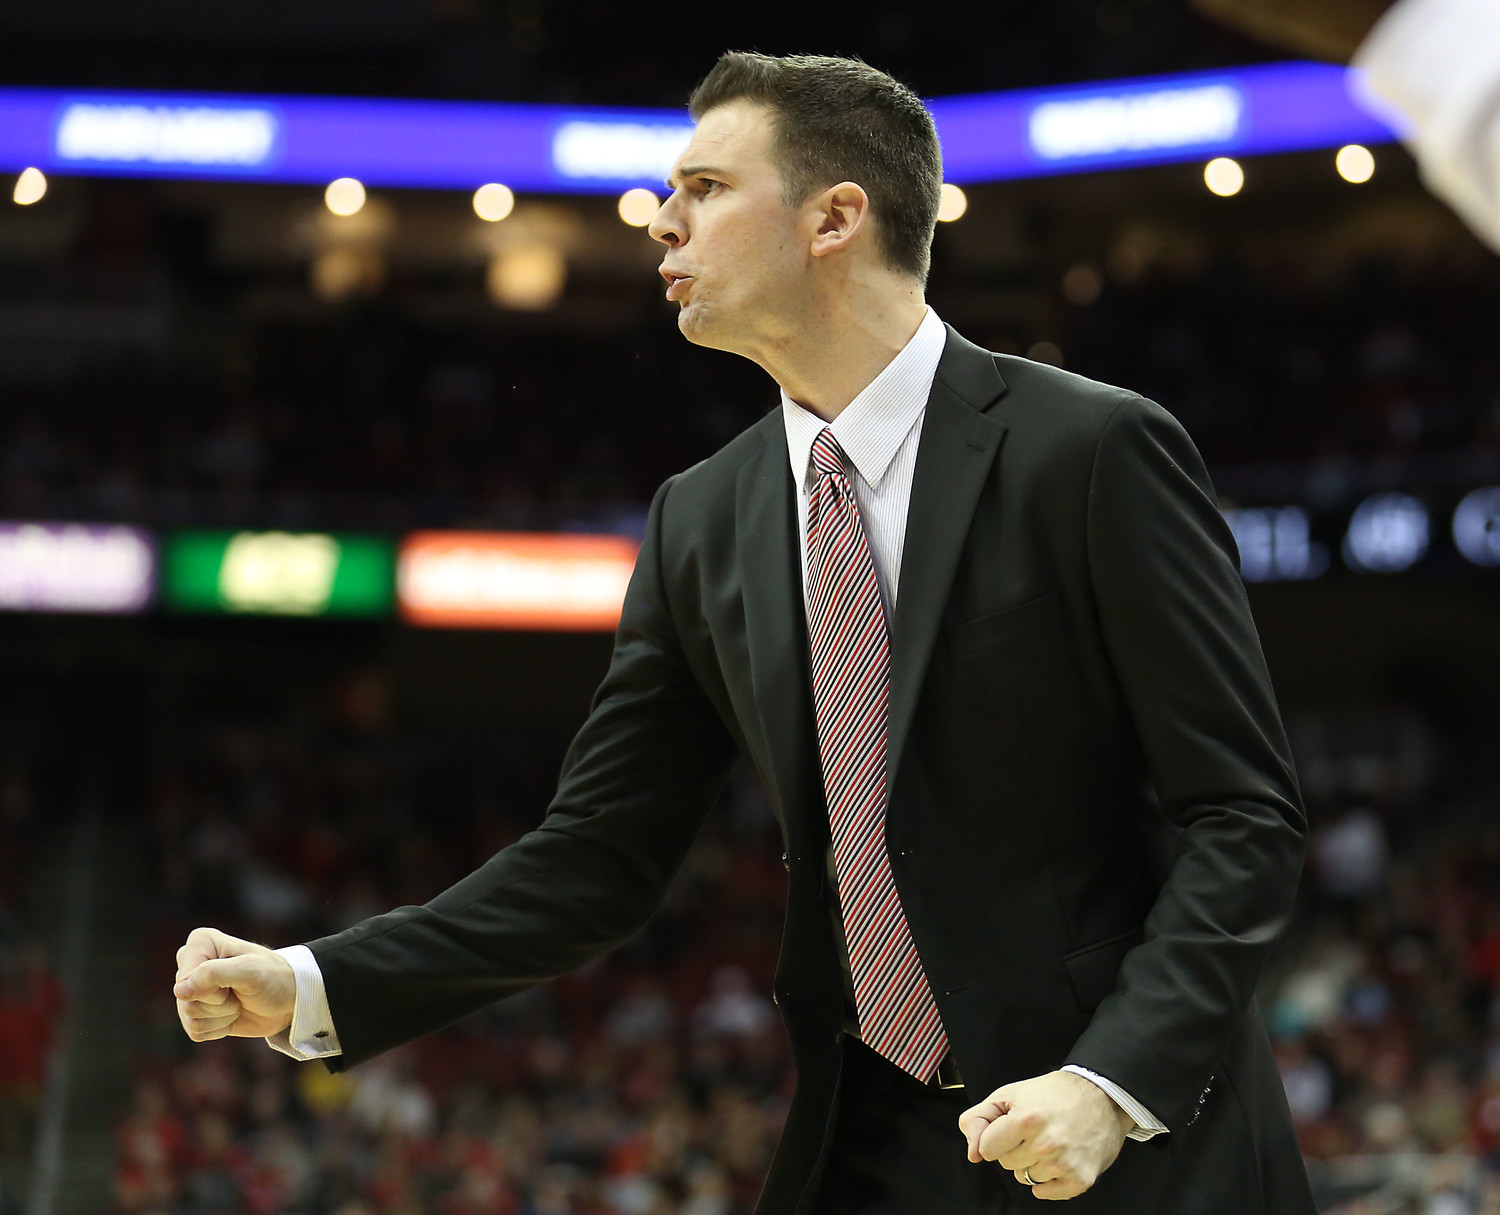 David Padgett left Louisville with the same class he displayed during a season with difficult circumstances.  (Kentucky Today/Robin Cornetet)